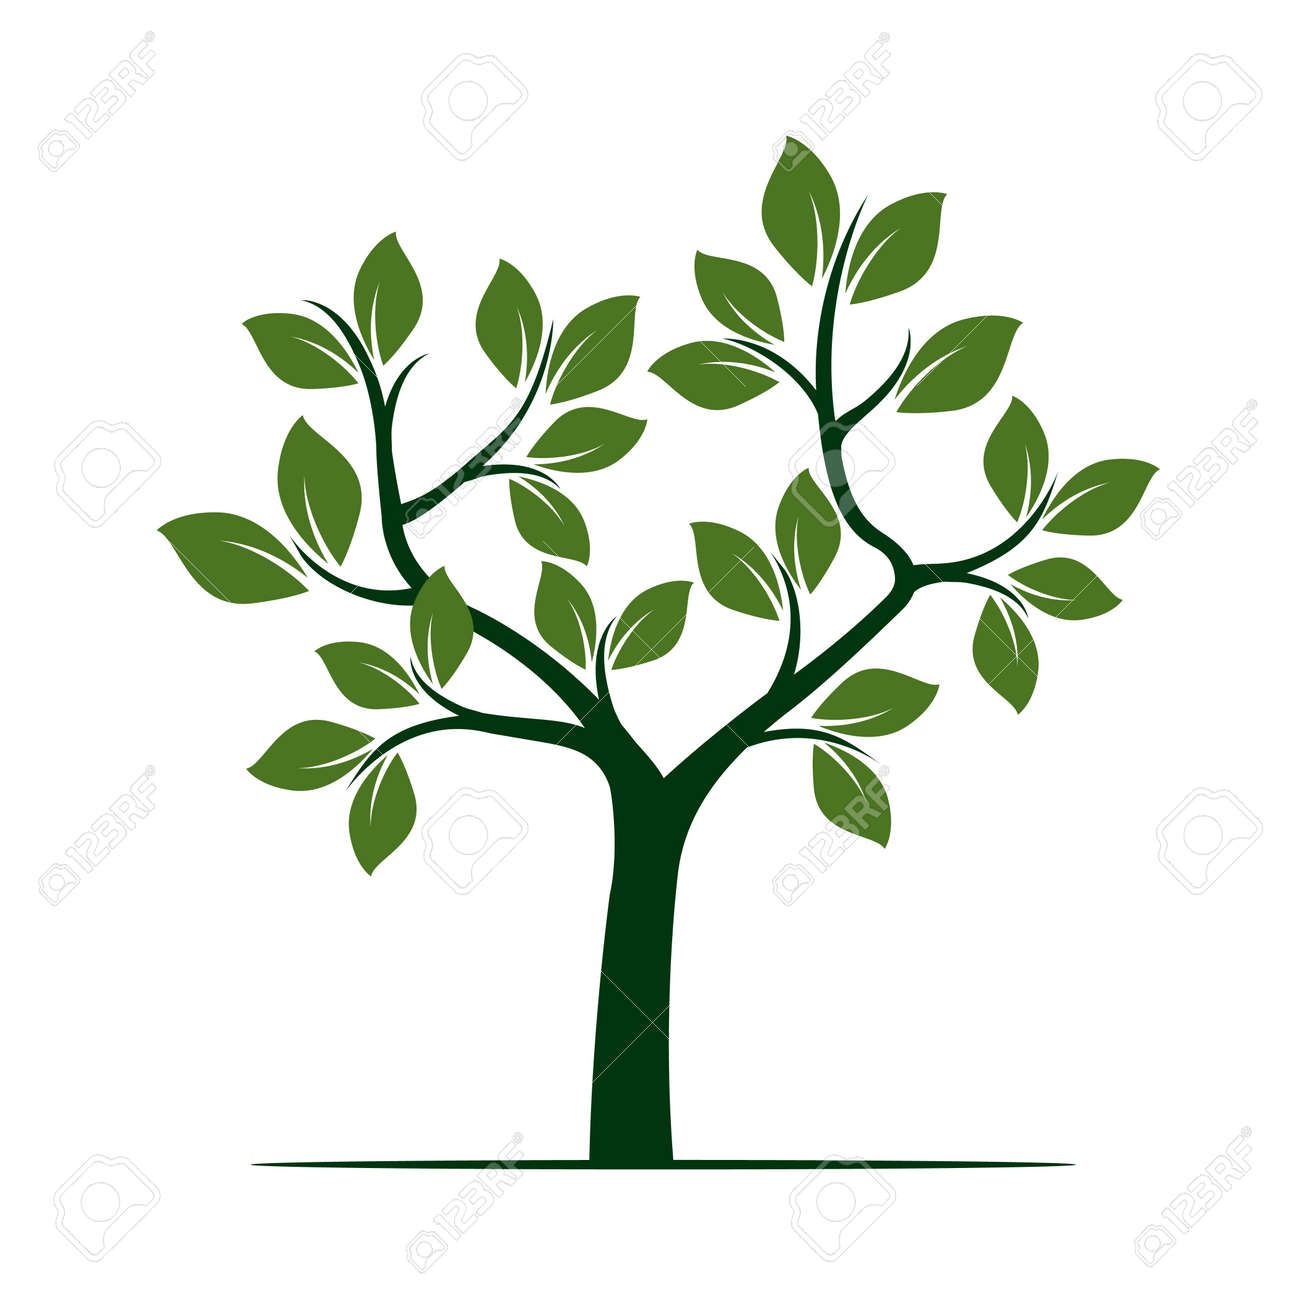 green tree vector illustration royalty free cliparts vectors and rh 123rf com tree vector png tree vector file